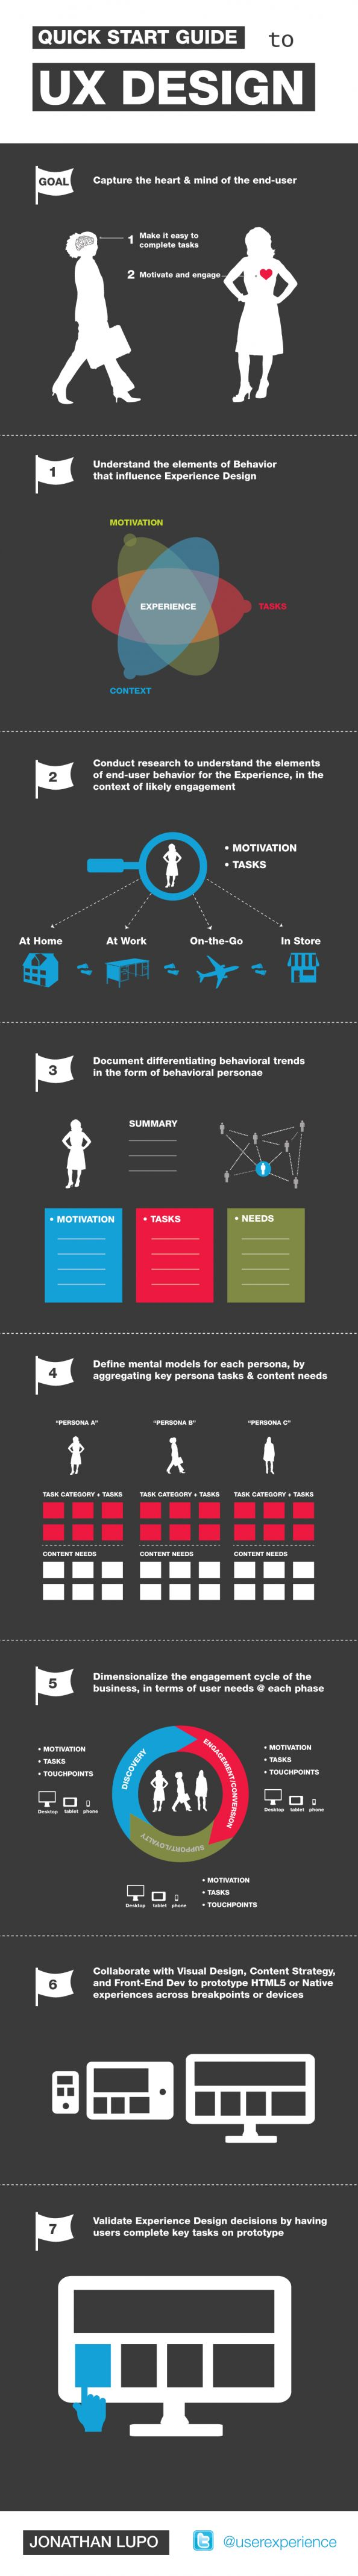 A Quick Start Guide to UX Design - #Infographic #Website #UX